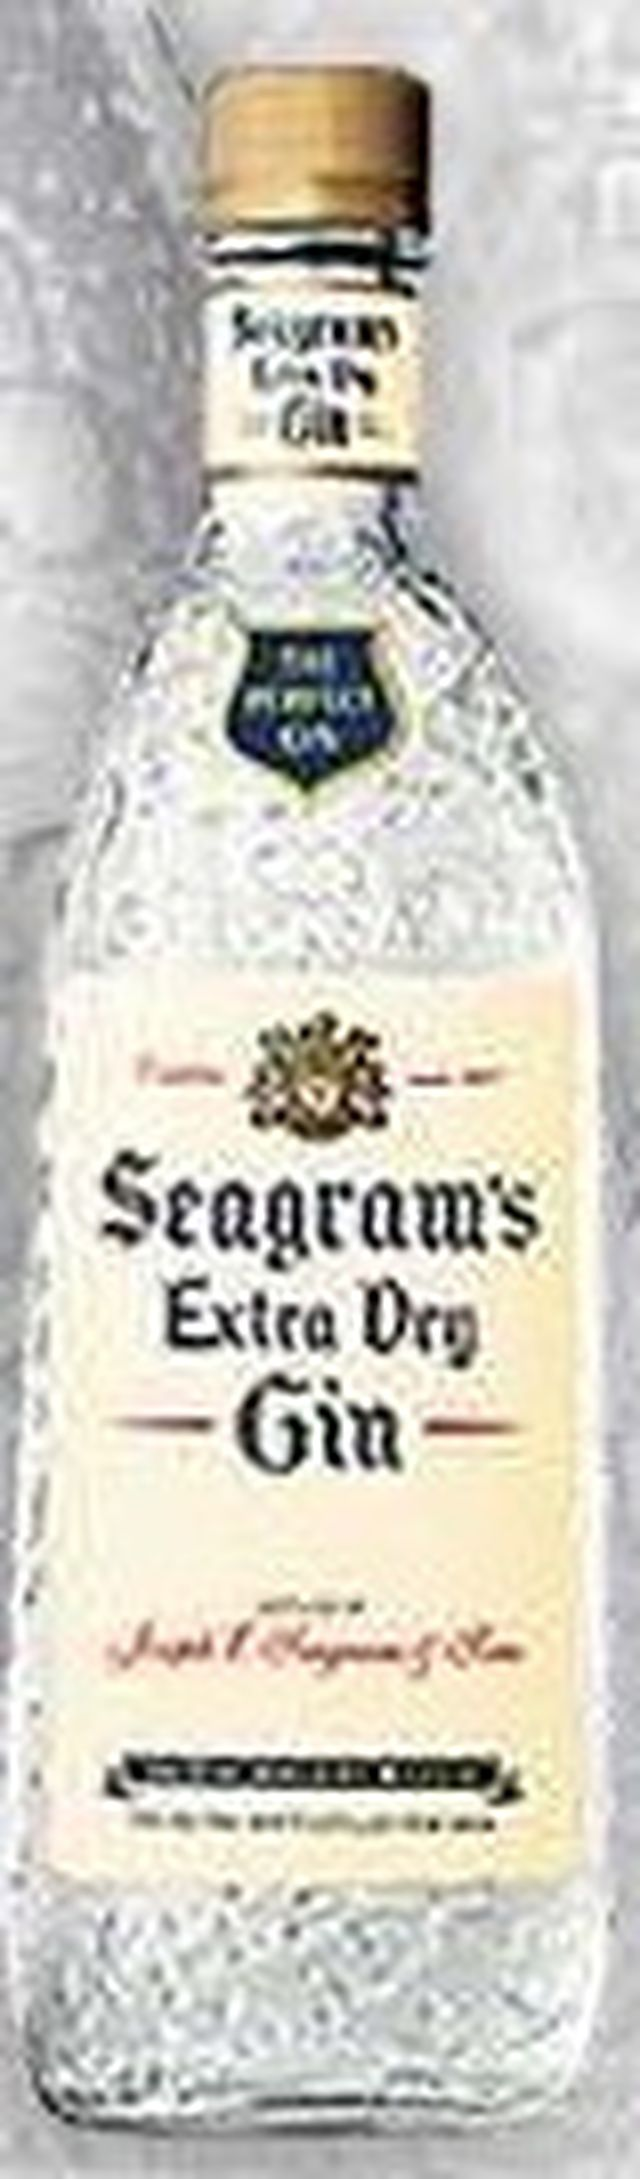 5 of the Best Brands of Gin for $10: Seagram's Extra Dry Gin